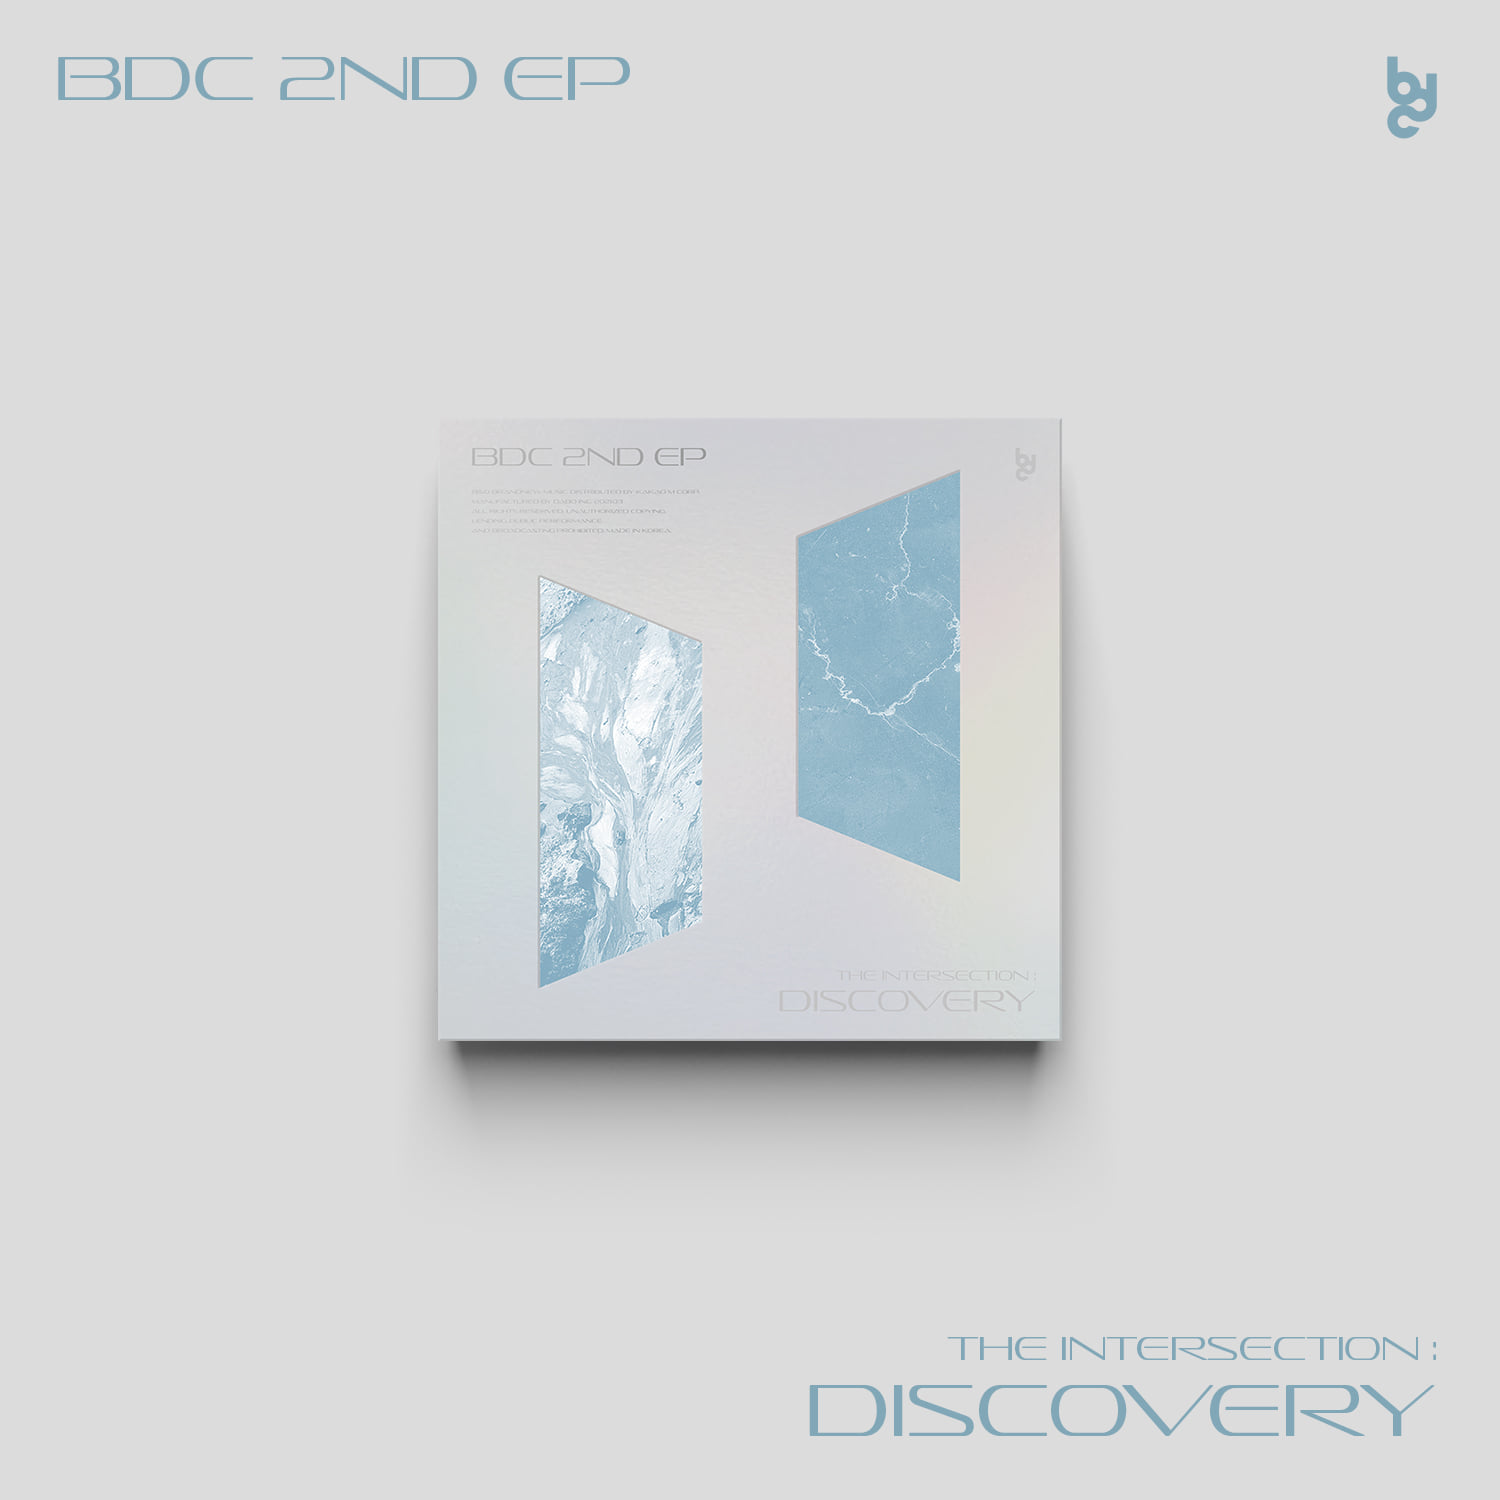 [PRE-ORDER] BDC - EP Album [THE INTERSECTION : DISCOVERY] (DREAMING Ver.)케이팝스토어(kpop store)